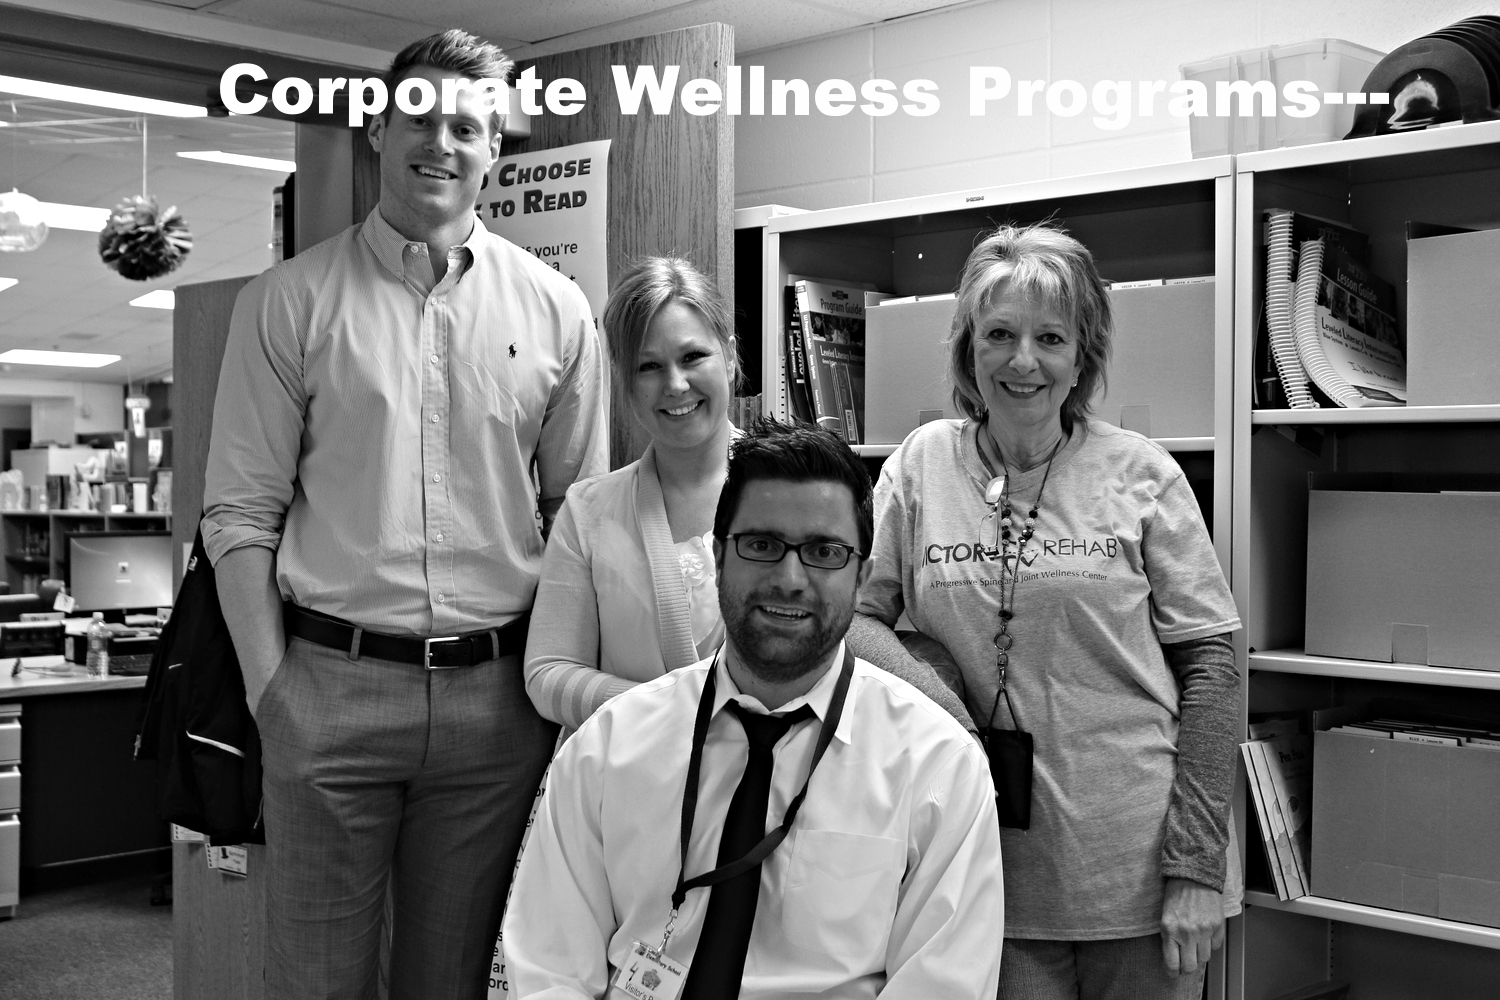 Victory Rehab has been working with Naperville charaties, corporations, schools, etc... to help establish sustainable wellness programs. Click to find out more.